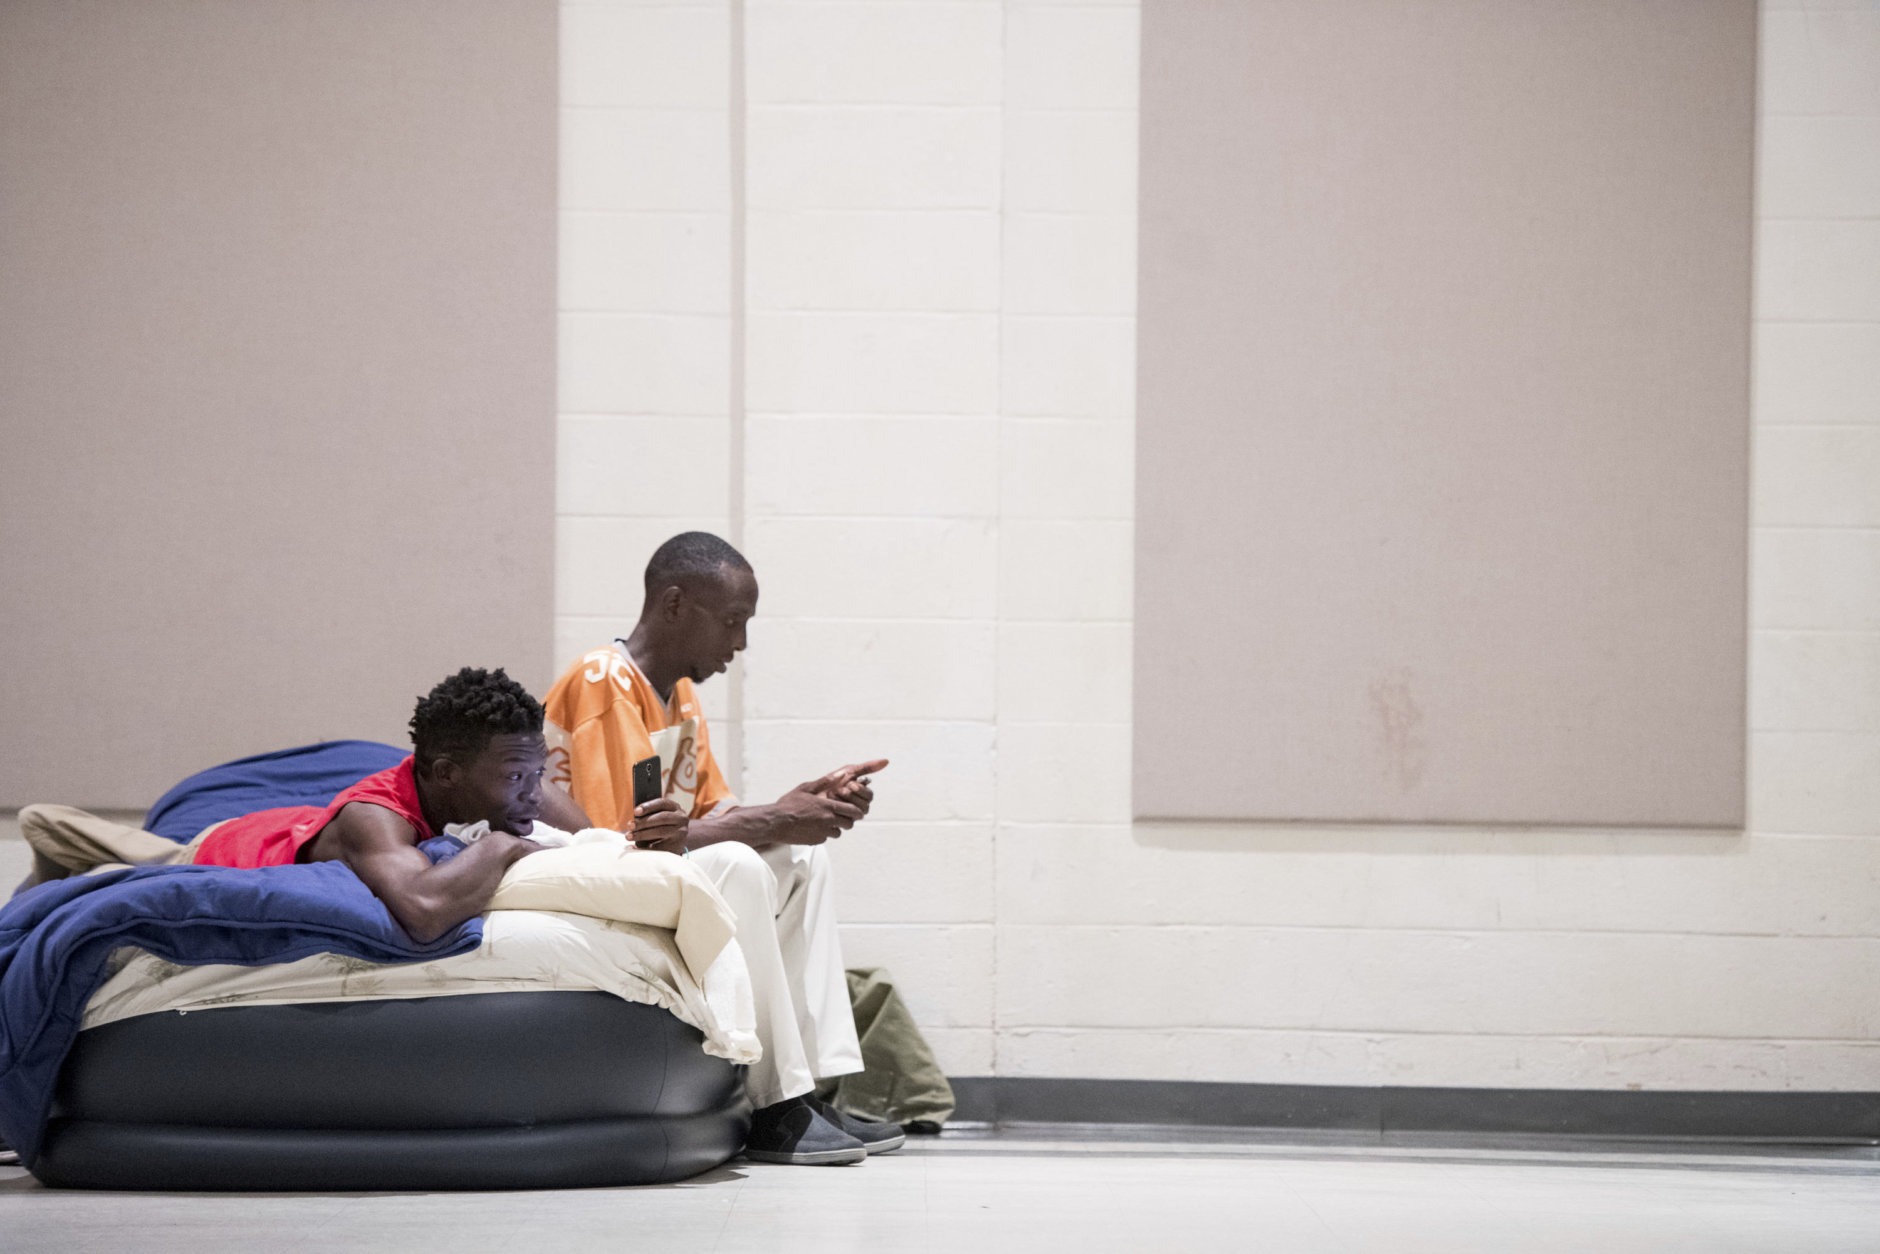 Eric Edwards Jr., left, and Elliott Farmer Jr. look at their phones from a blow up mattress at a storm shelter at Washington Street United Methodist Church as Florence slowly moves across the East Coast Friday, Sept. 14, 2018, in Columbia, S.C. Florence already has proven deadly with its nearly nonstop rain, surging seawater and howling winds, and the threat is days from ending as remnants of the hurricane slowly creep inland across the Carolinas. (AP Photo/Sean Rayford)